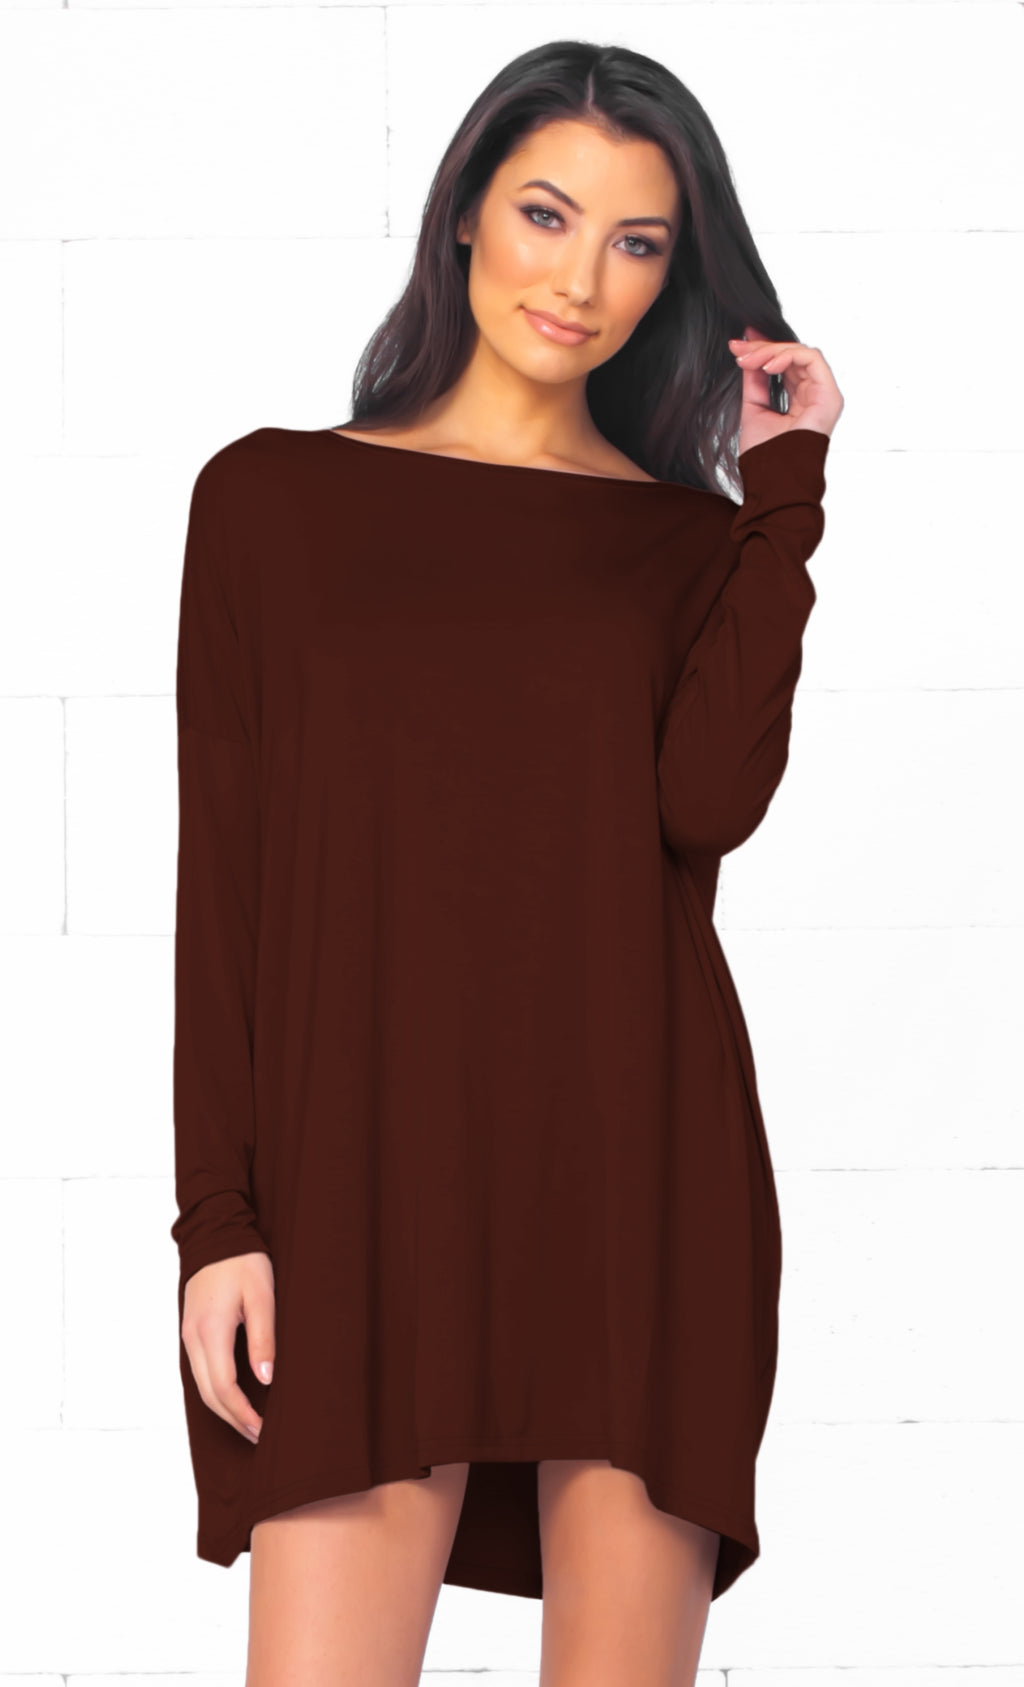 Piko 1988 Chocolate Brown Long Sleeve Scoop Neck Piko Bamboo Oversized Basic Tunic Tee Shirt Mini Dress